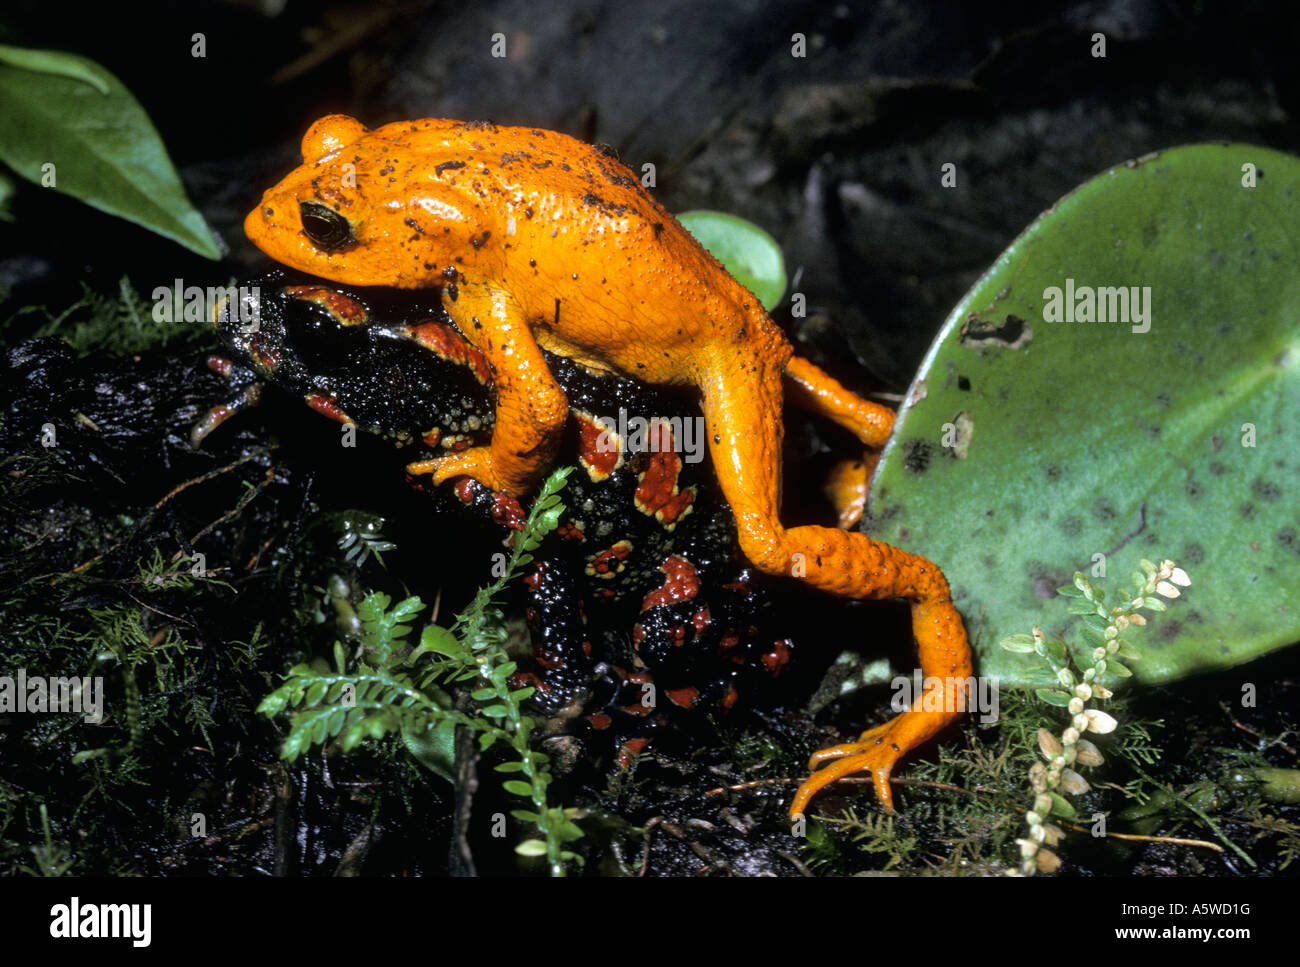 golden toad stock photos golden toad stock images alamy